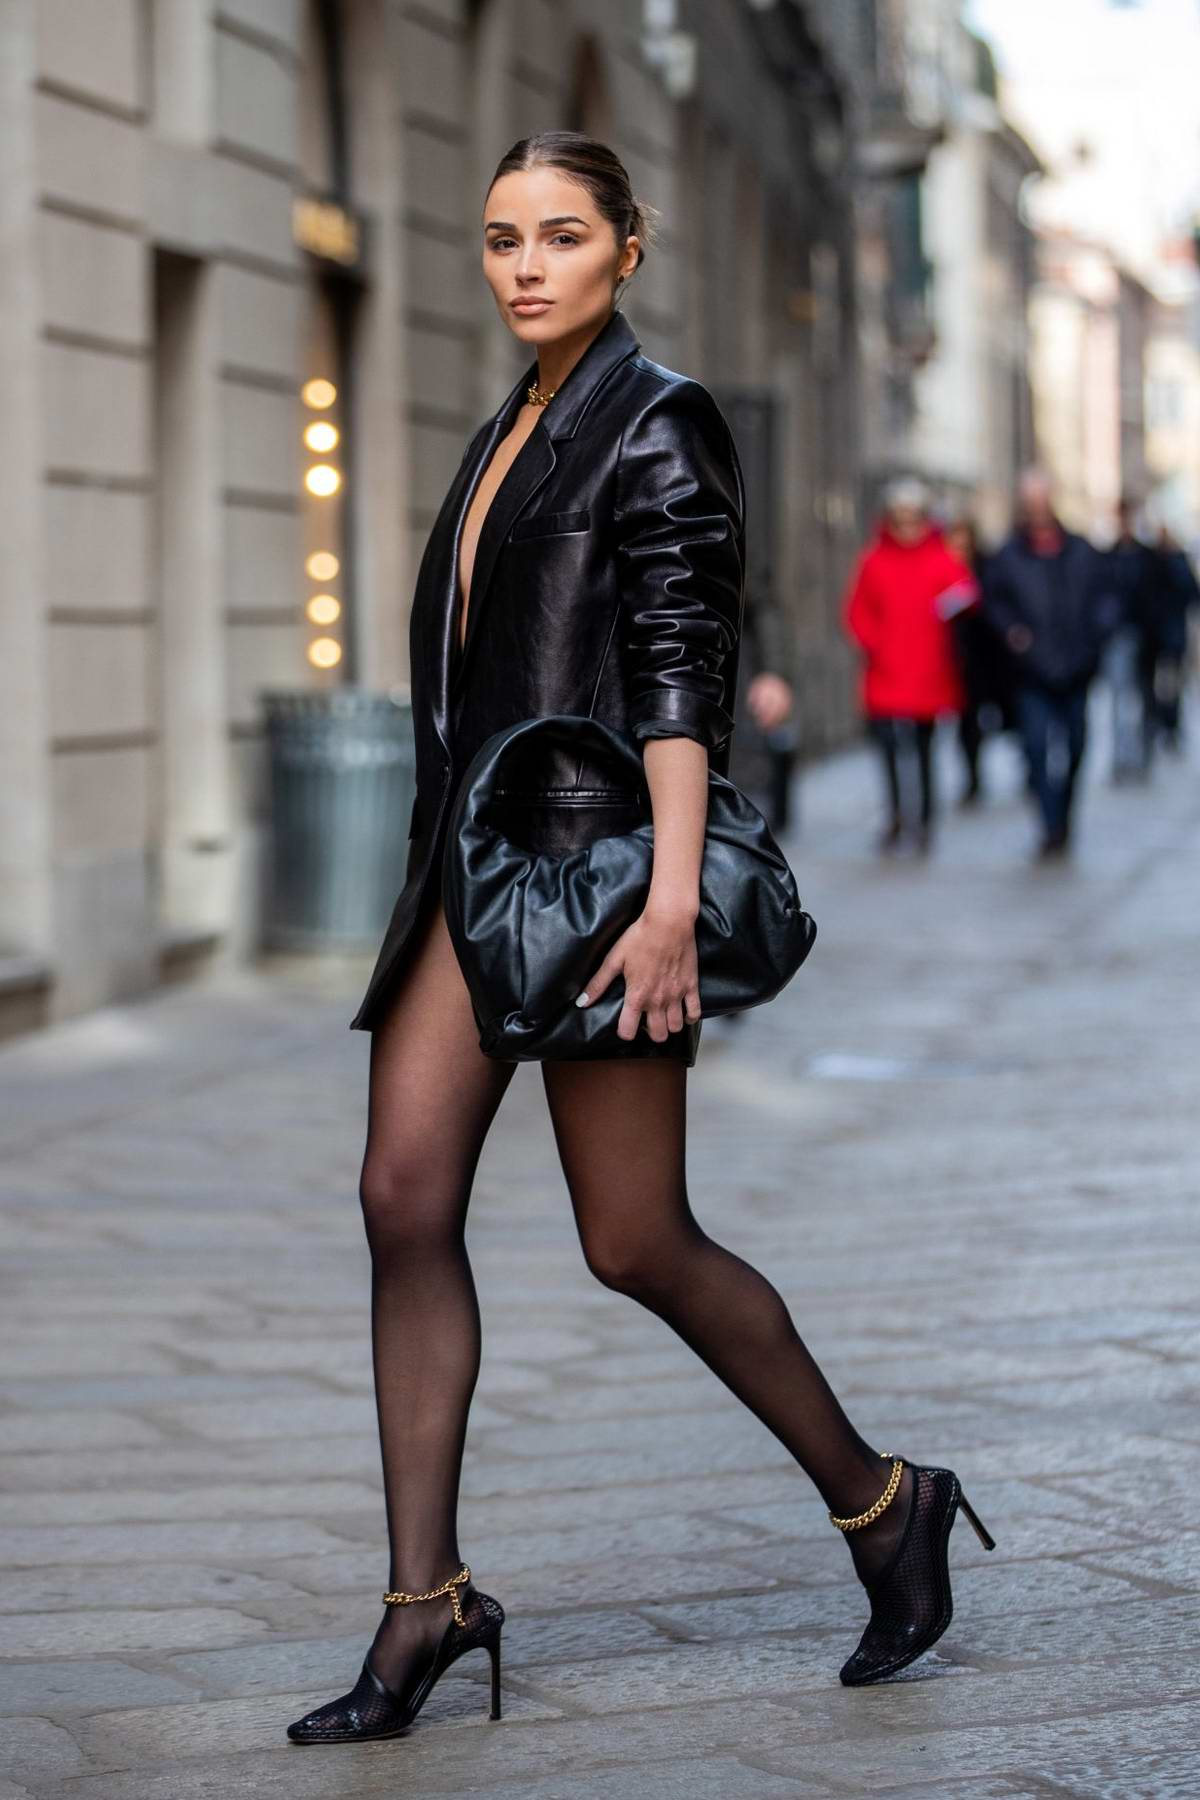 Olivia Culpo is all style in black leather blazer dress as she steps out during Milan Fashion Week 2020 in Milan, Italy